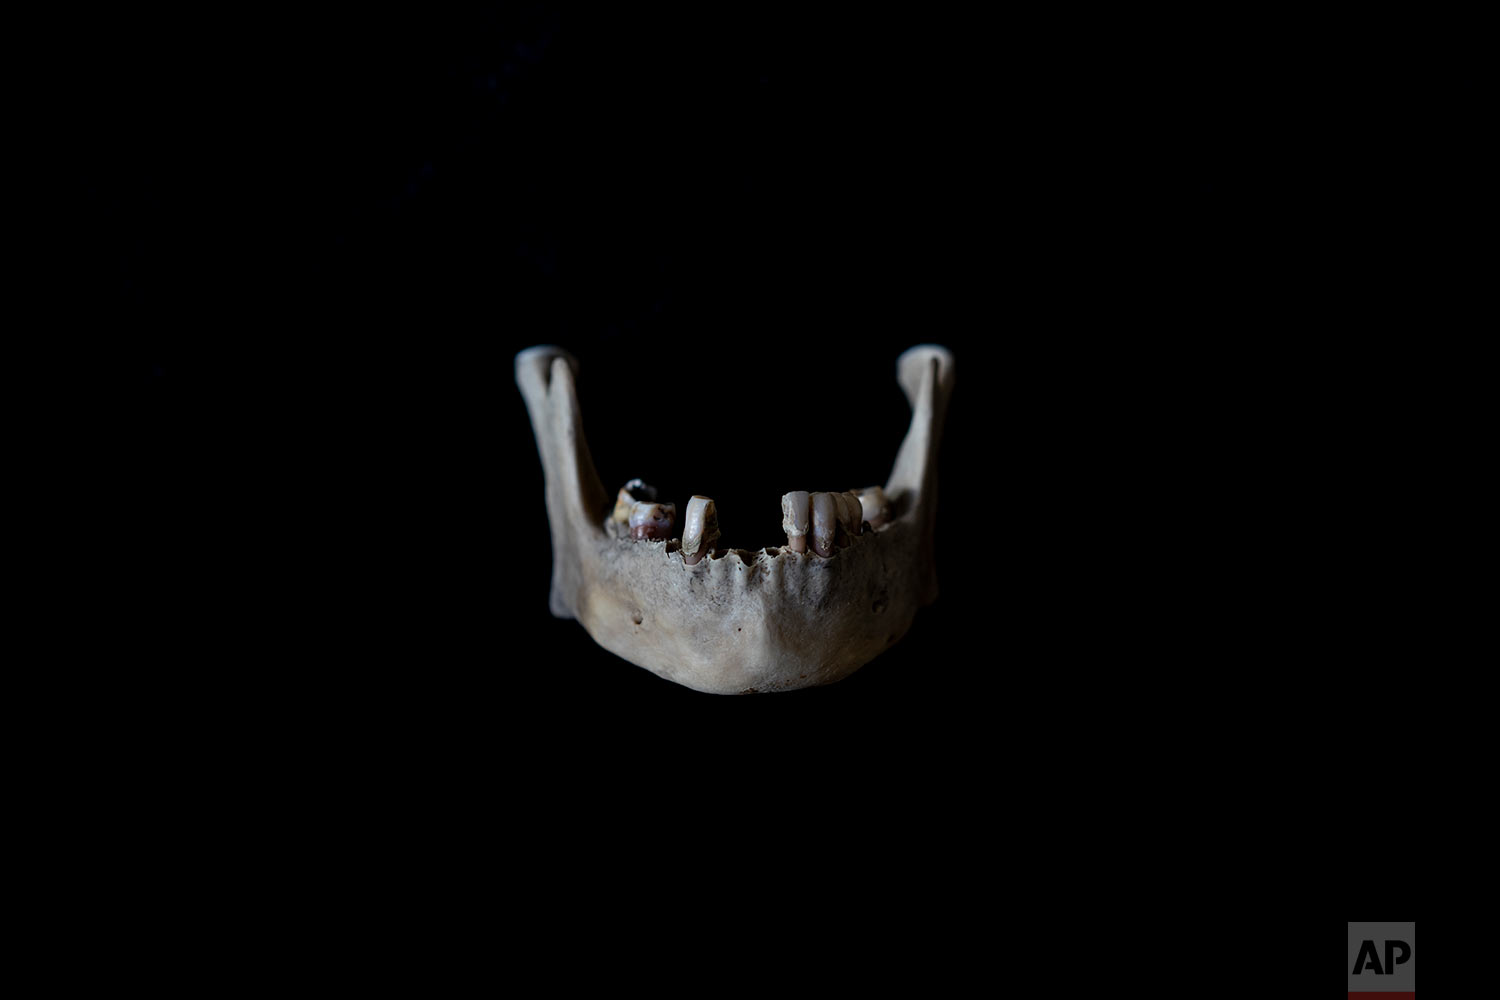 In this Monday Oct. 1, 2018 photo, the jaw of a black unidentified adult male is seen. The remains were found in August 2018 in a field in Johannesburg and brought to a mortuary for identification purposes. Once a demographic profile is estimated it will go to the victim identification center in the South African police department to create a facial reconstruction. (AP Photo/Bram Janssen)